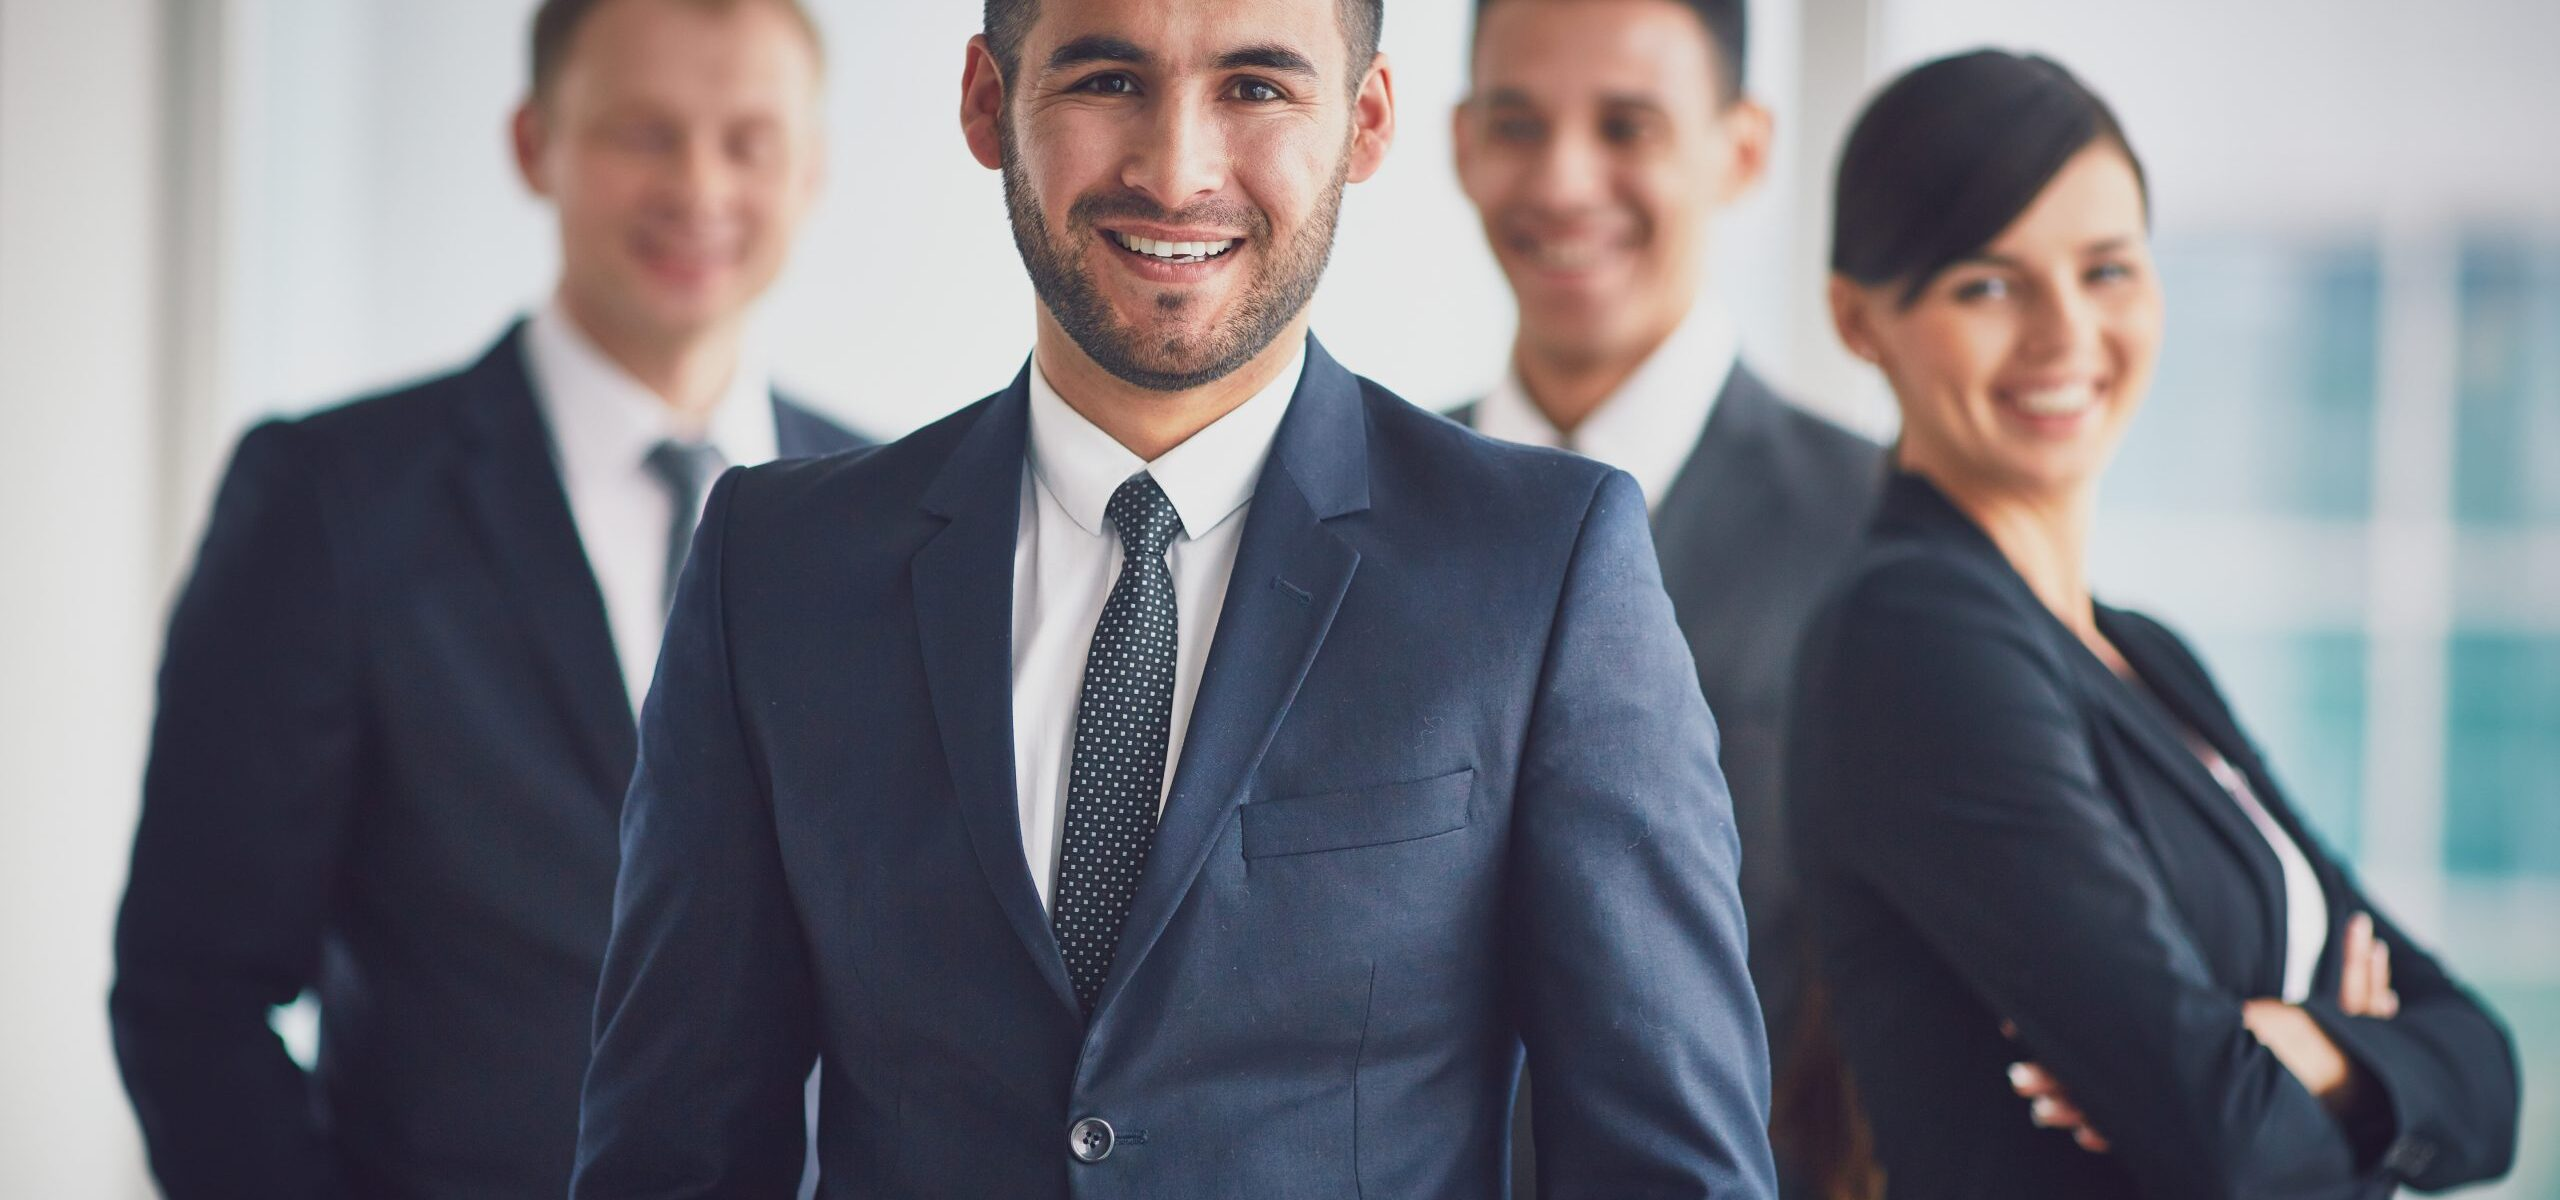 Portrait of confident business partners looking at camera with smiling leader in front